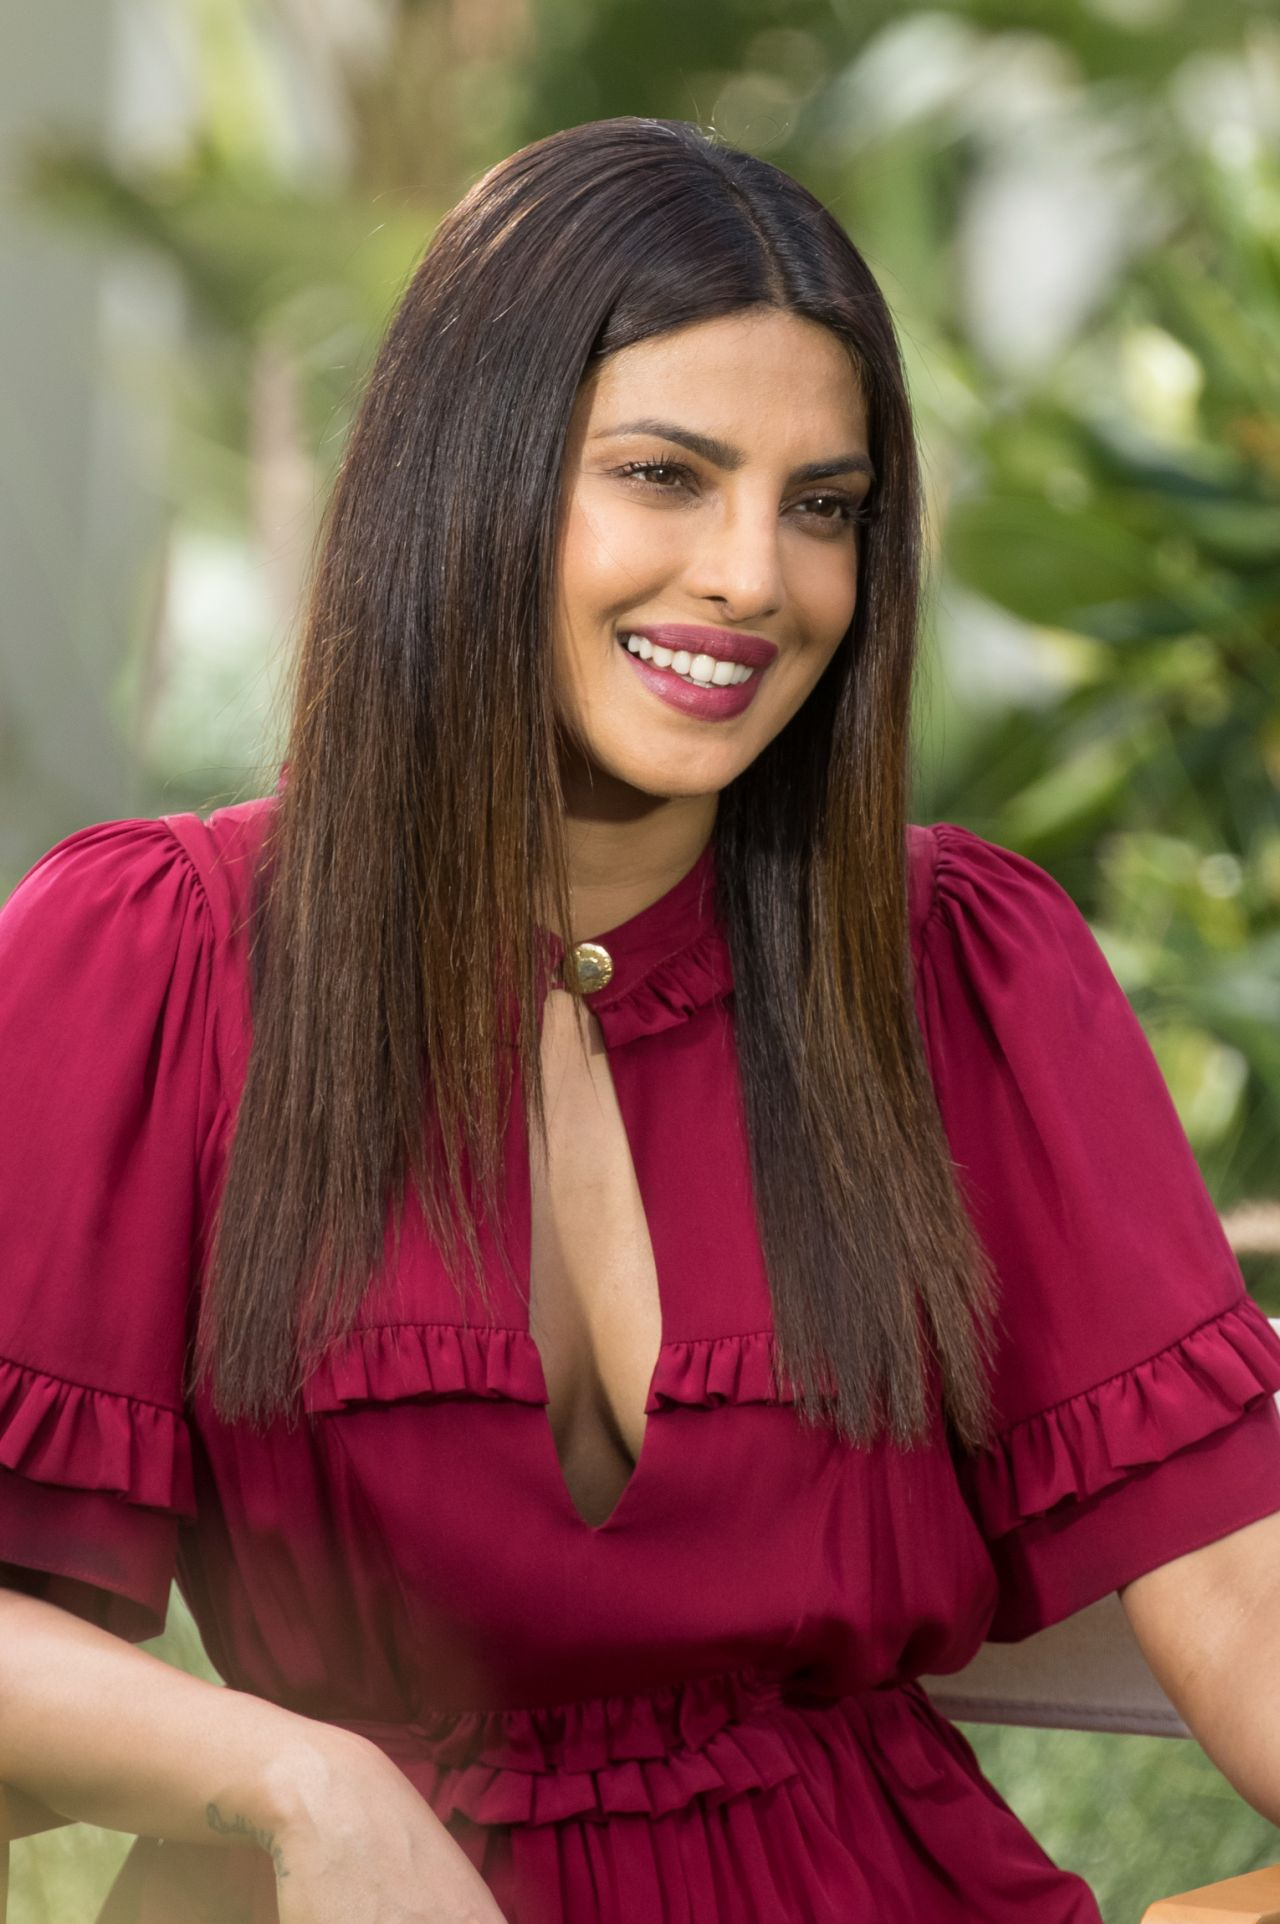 priyanka chopra - photo #25